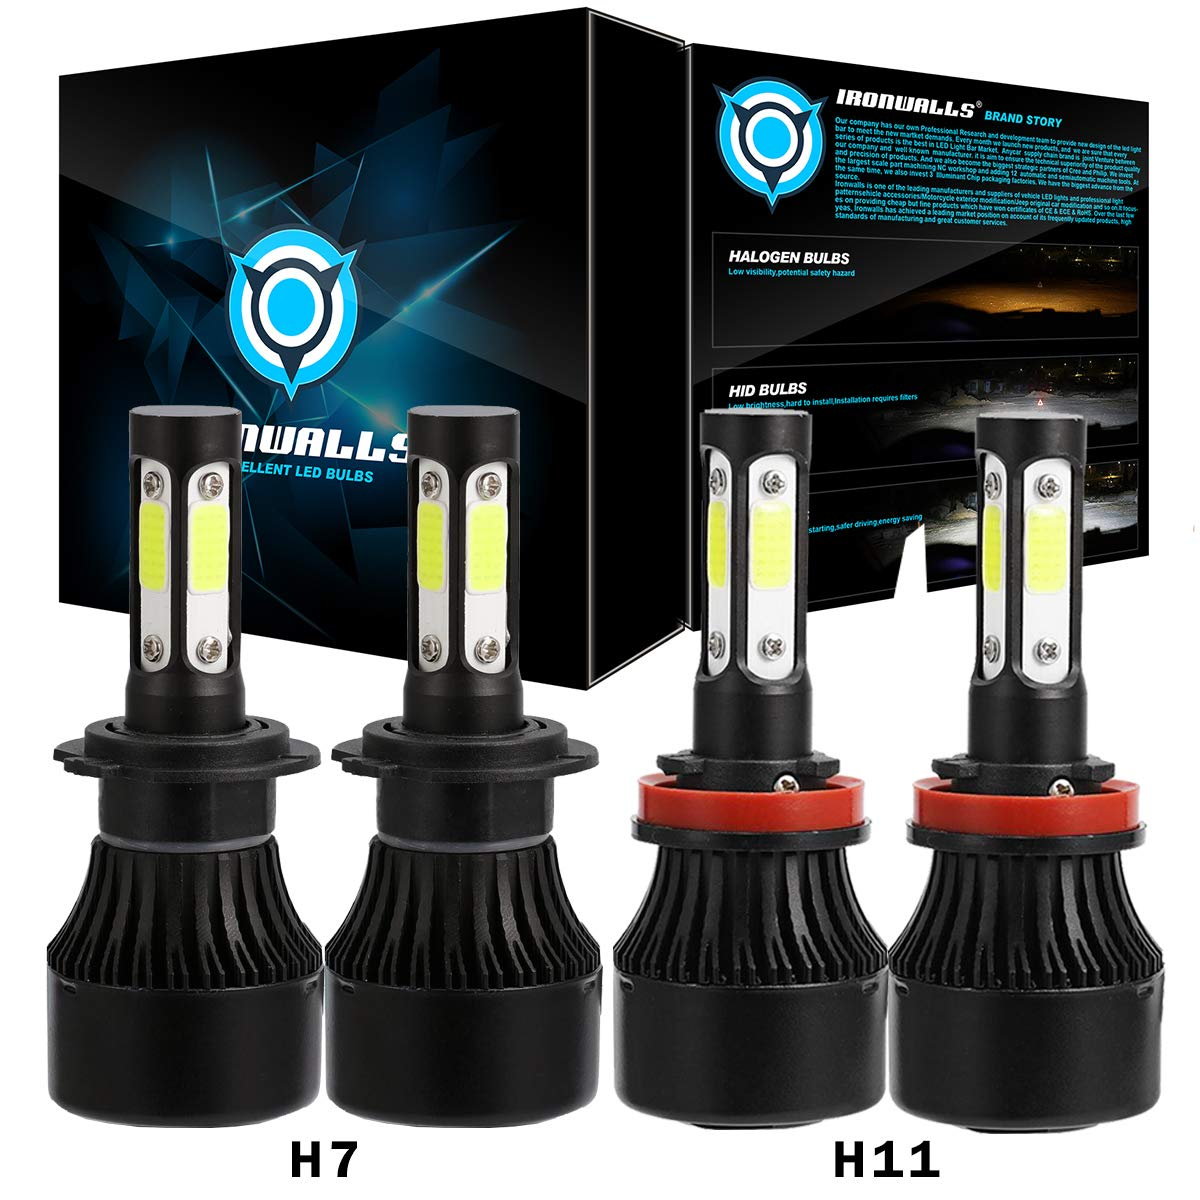 IRONWALLS F-X7 Series 2 Sets H7+H11 LED Headlight Bulbs All-in-one Conversion Kit 72W 8000LM 6500K COB Chips Super Bright White -1 Year Warranty